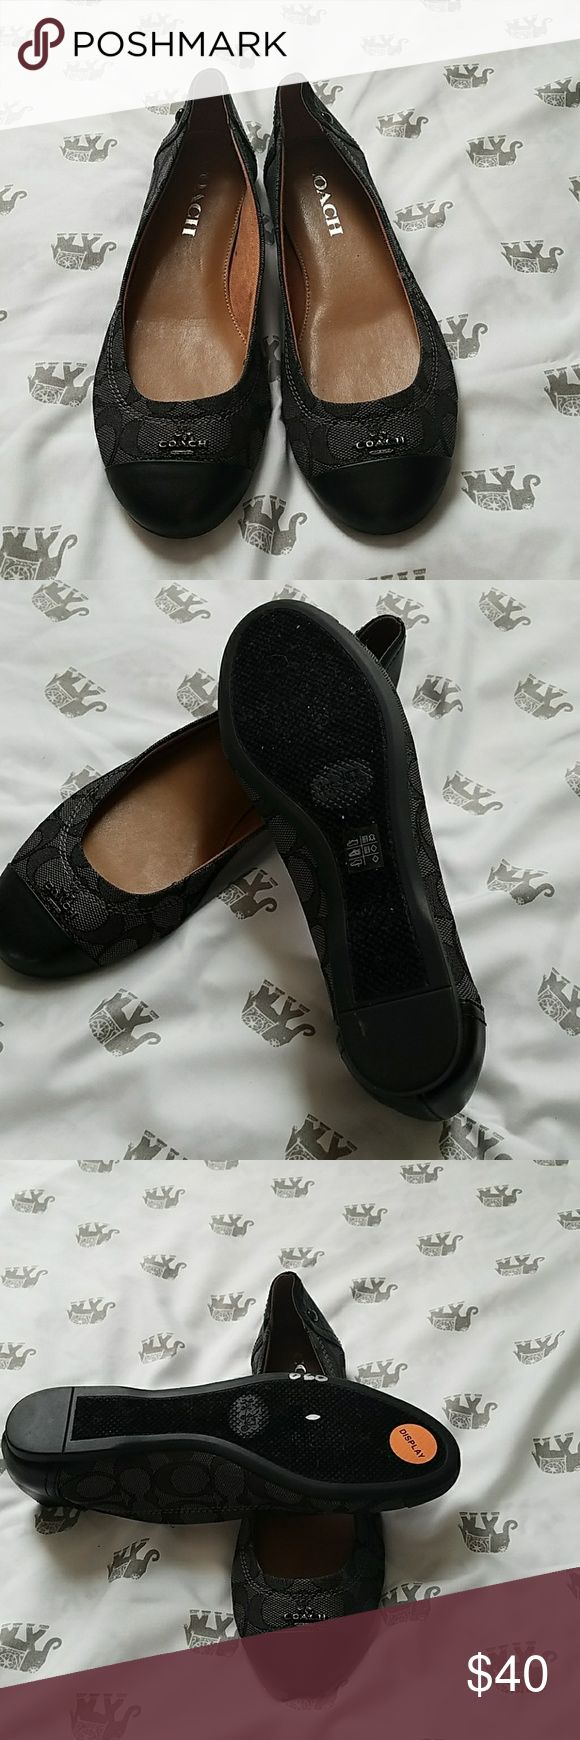 Coach flats New  without box Coach Shoes Flats & Loafers